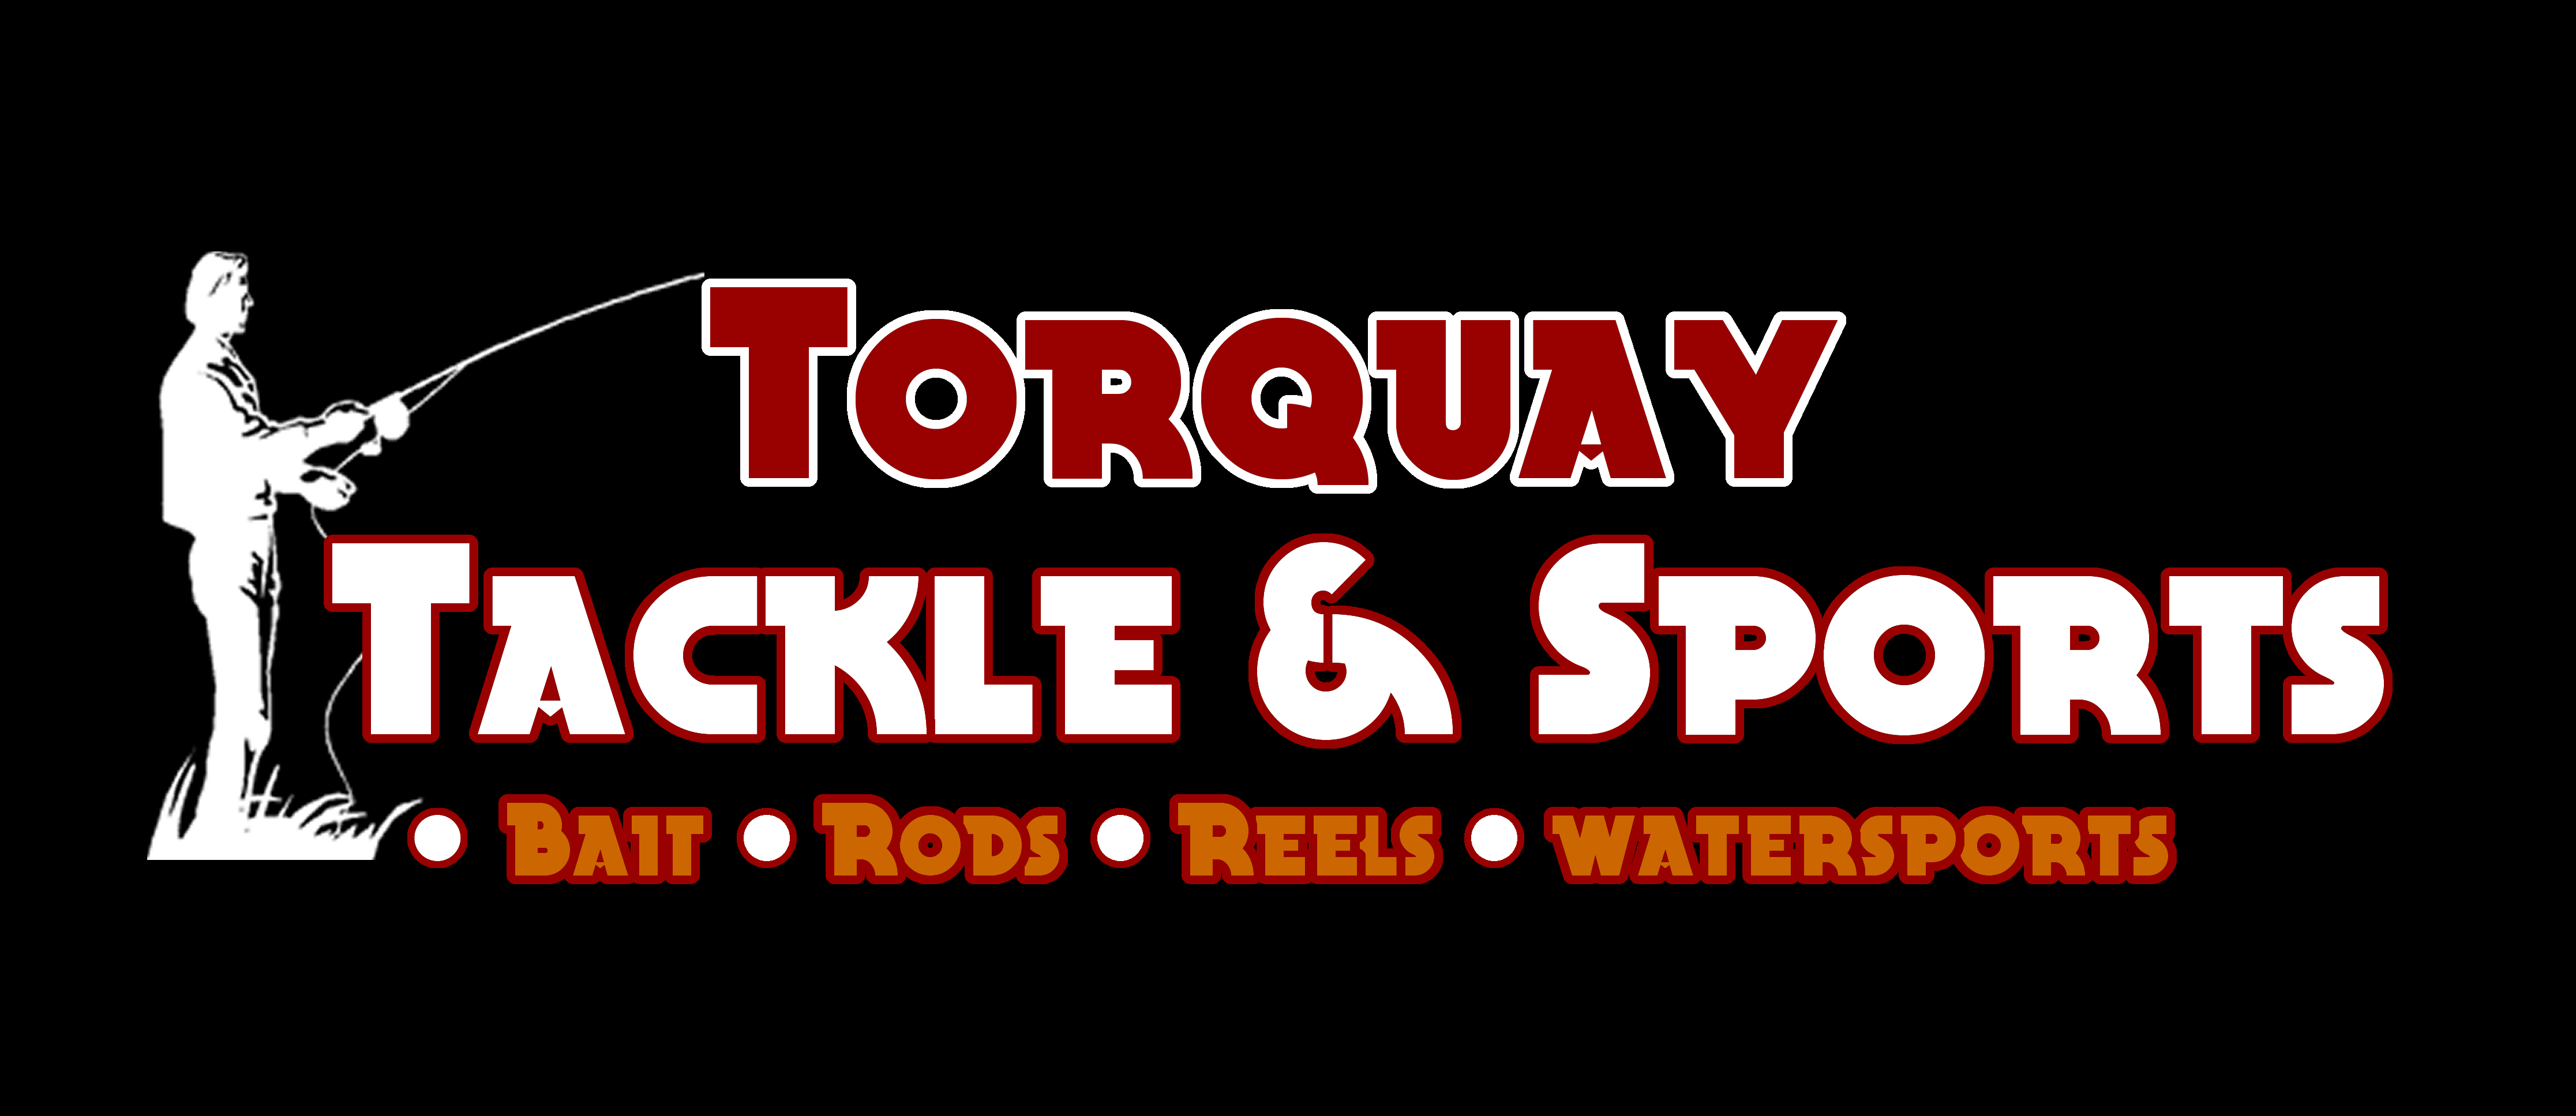 Torquay Tackle & Sports Logo